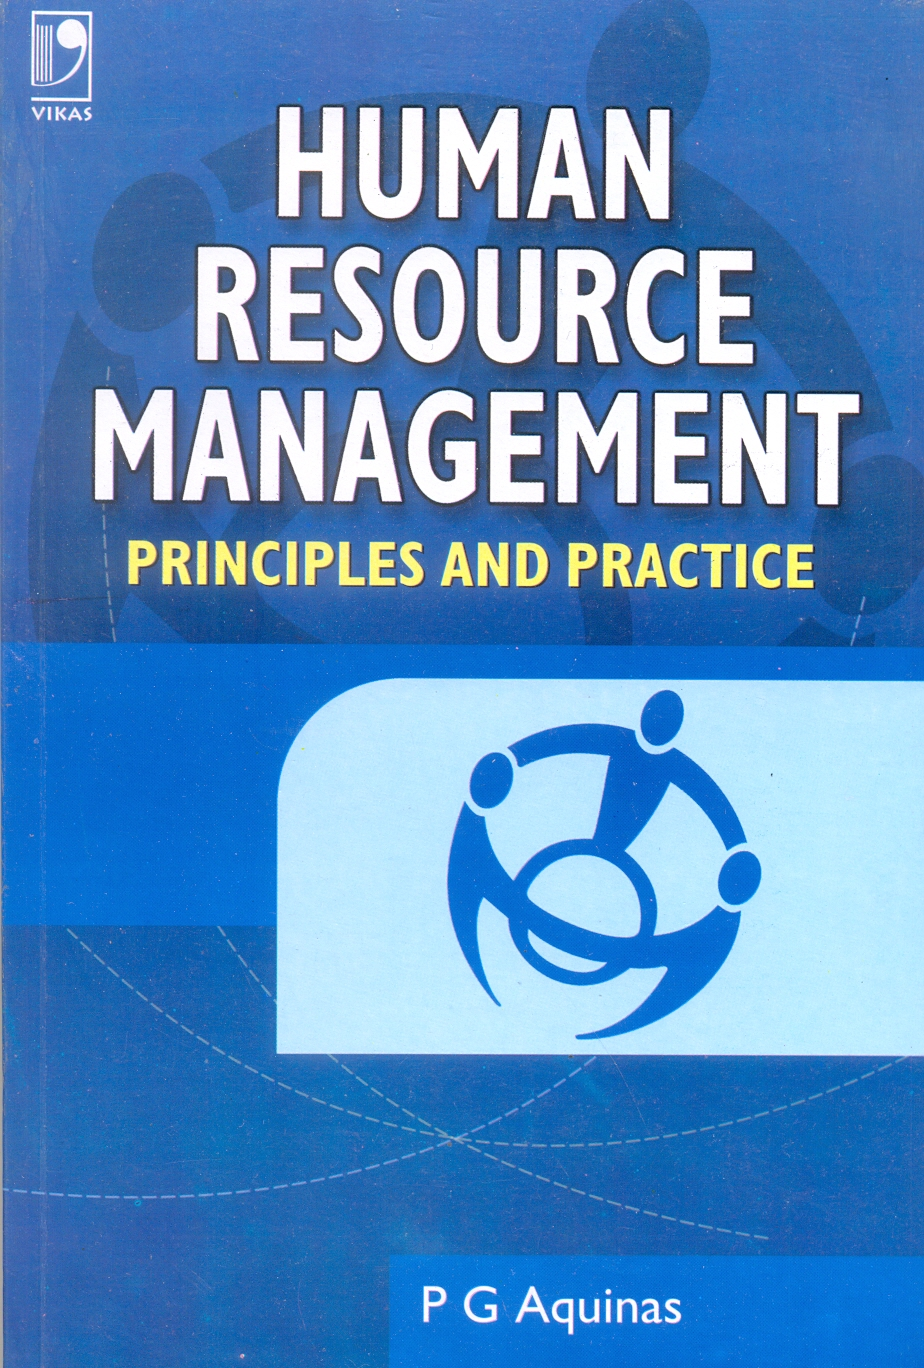 Human Resource Management: Principles and Practice by P G Aquinas